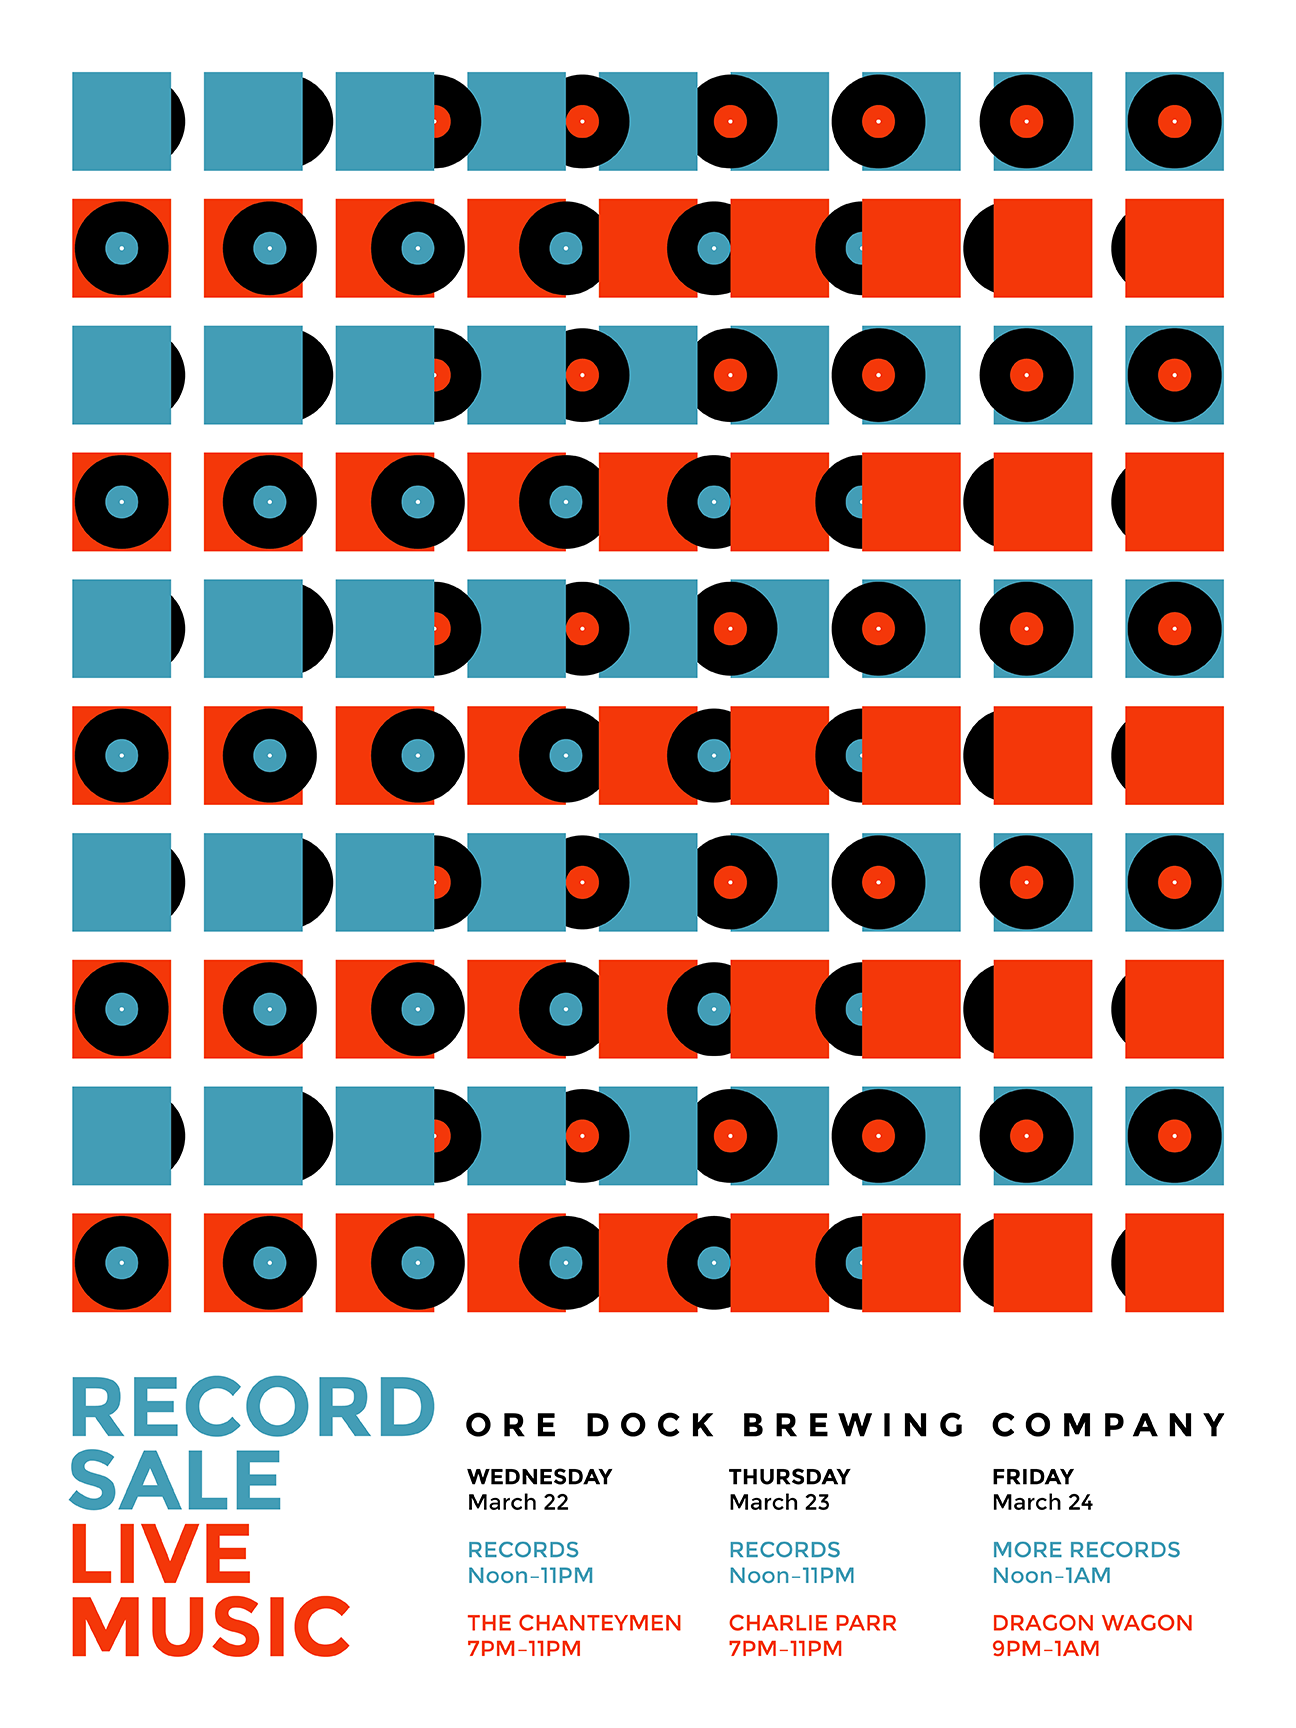 18 x 24 Record Sale resize.png